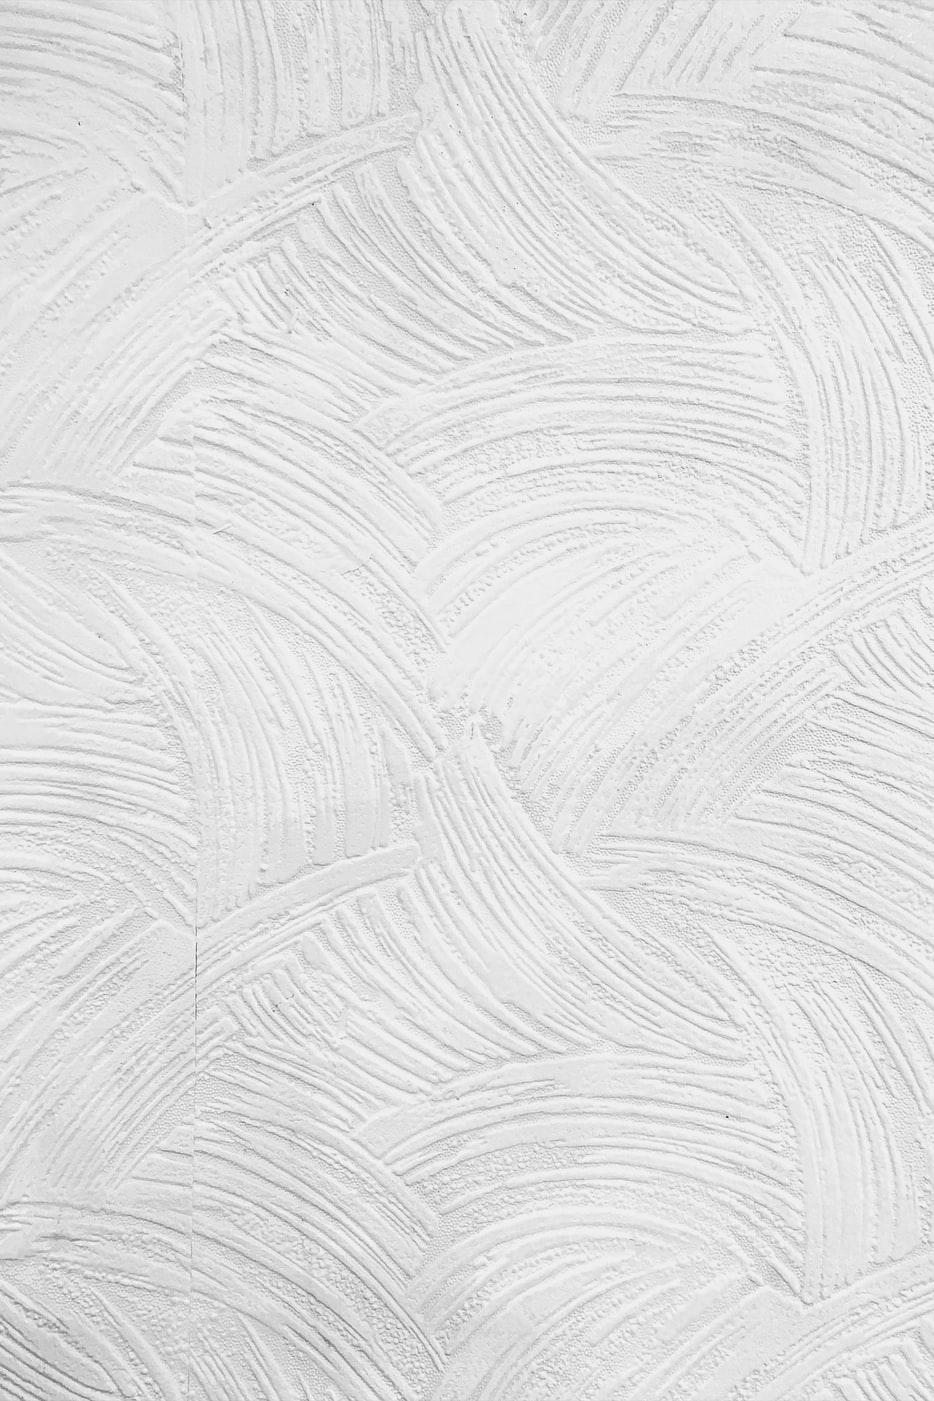 White stucco-looking pattern